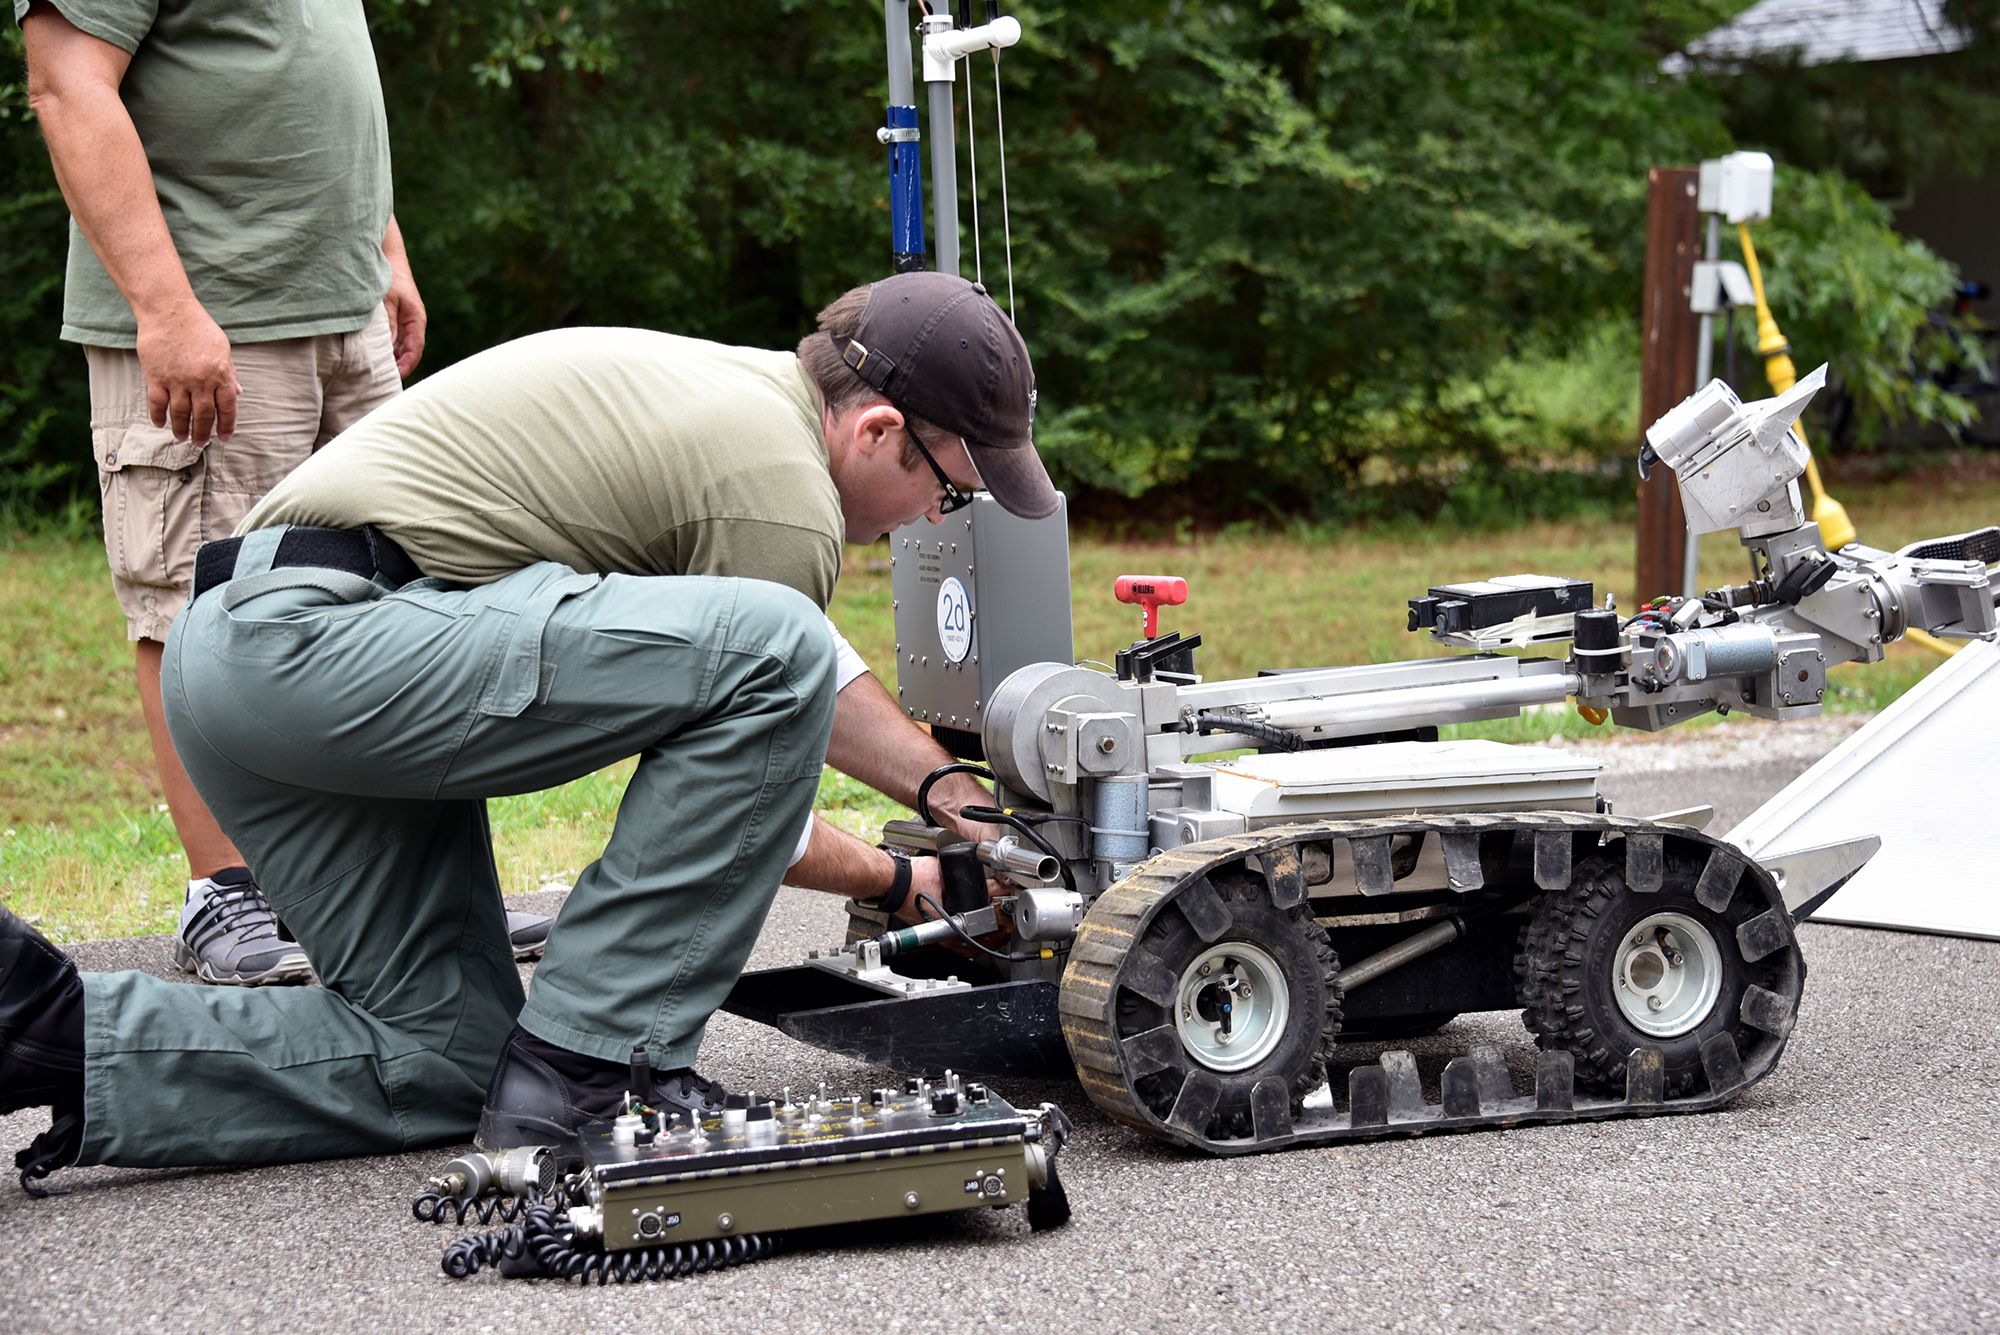 A bomb technician prepares a robot to search for a simulated explosive at the FBI's Hazardous Devices School at Redstone Arsenal in Huntsville, Alabama.